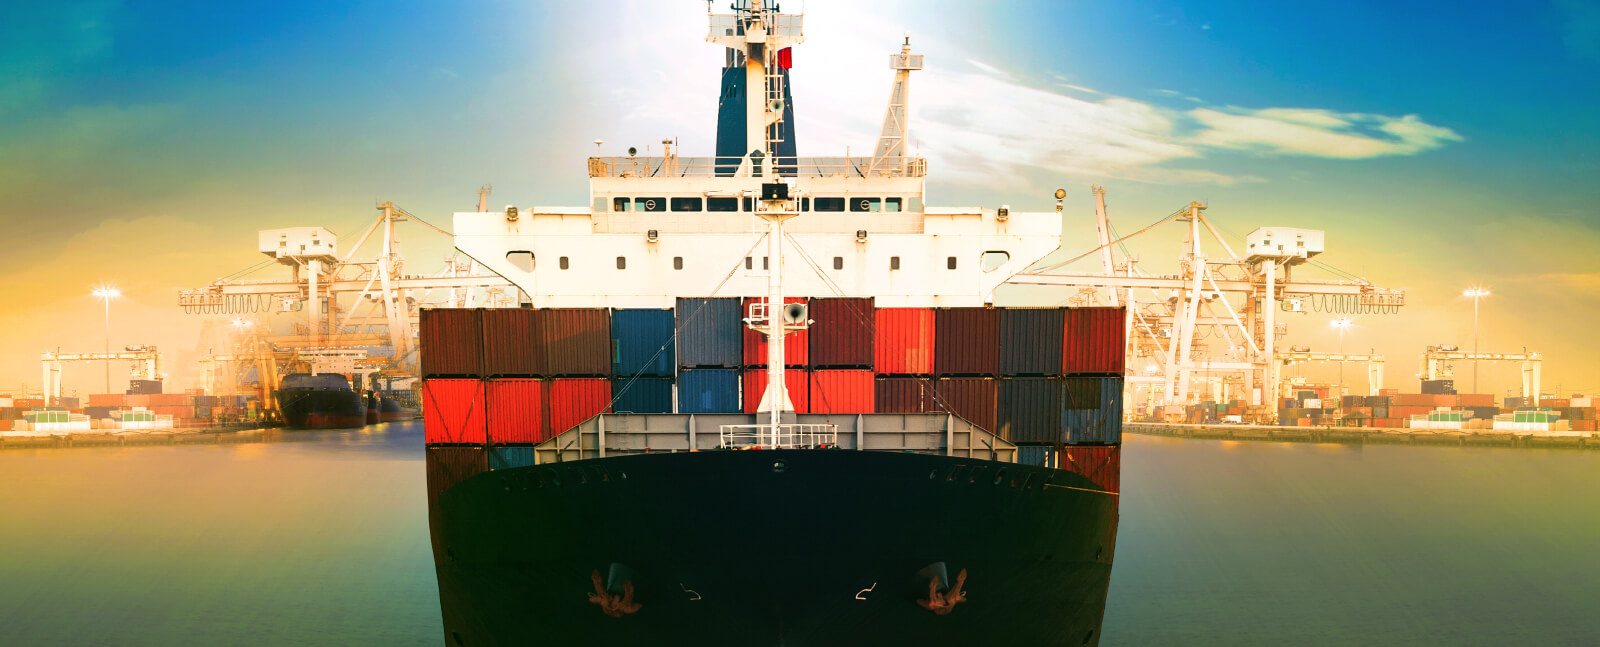 Container-trasnport